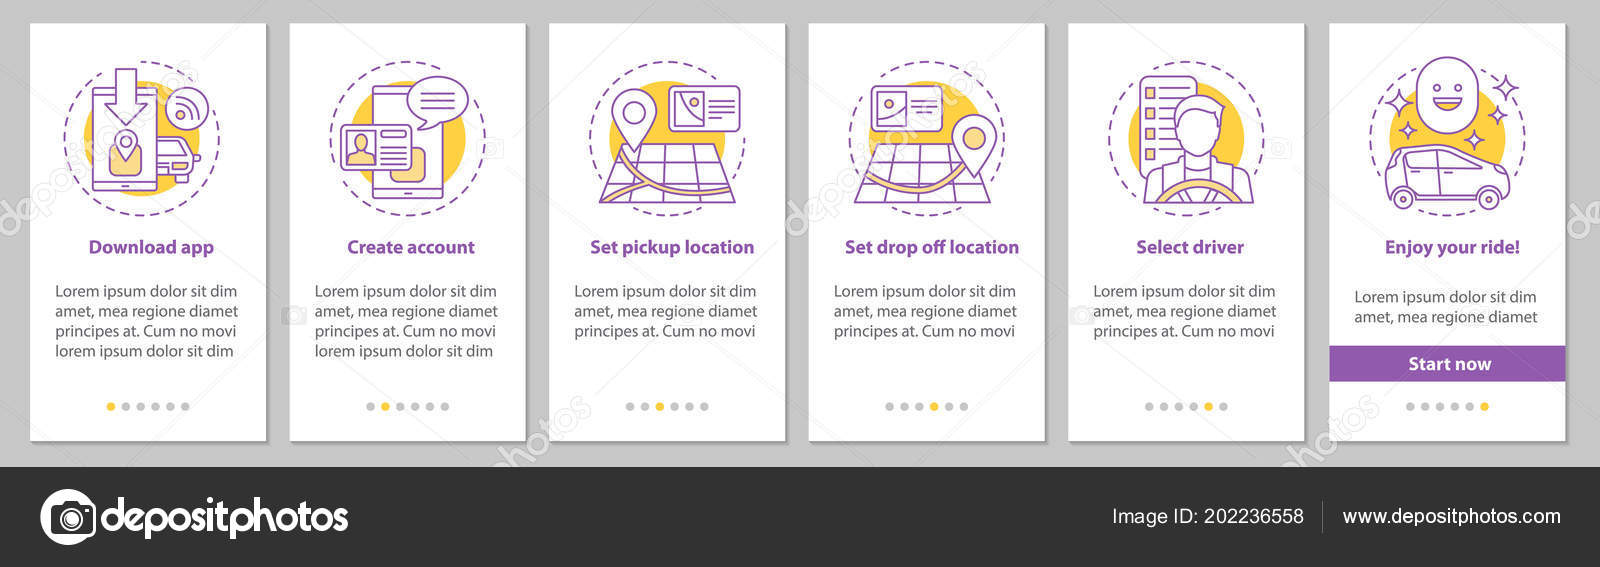 Carpooling Mobile App Onboarding Mobile App Page Screen Linear